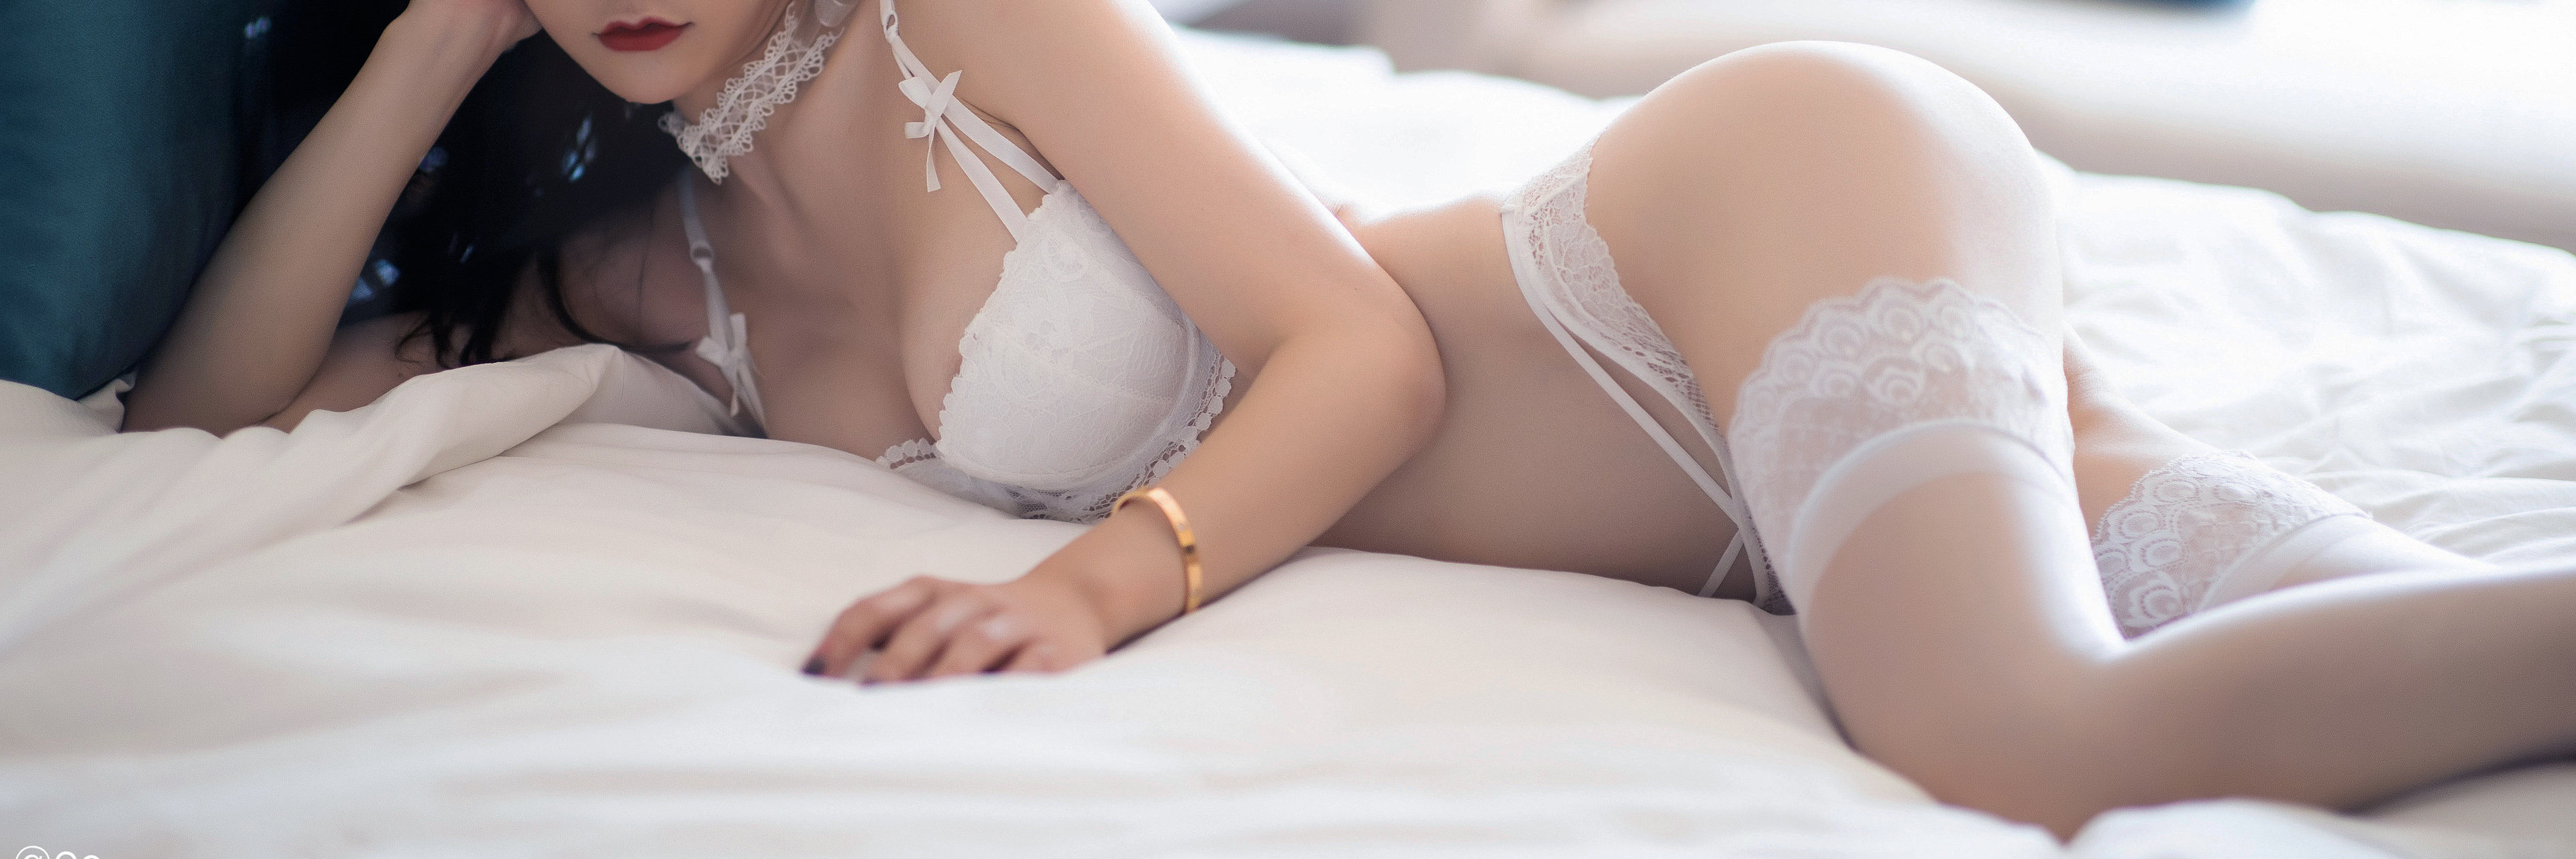 People 3840x1280 white lingerie white stockings stockings white bra push-up bras lying down lying on side cleavage in bed bedroom Xiuren Asian choker bridal lingerie lingerie bra panties thigh-highs ass Chinese